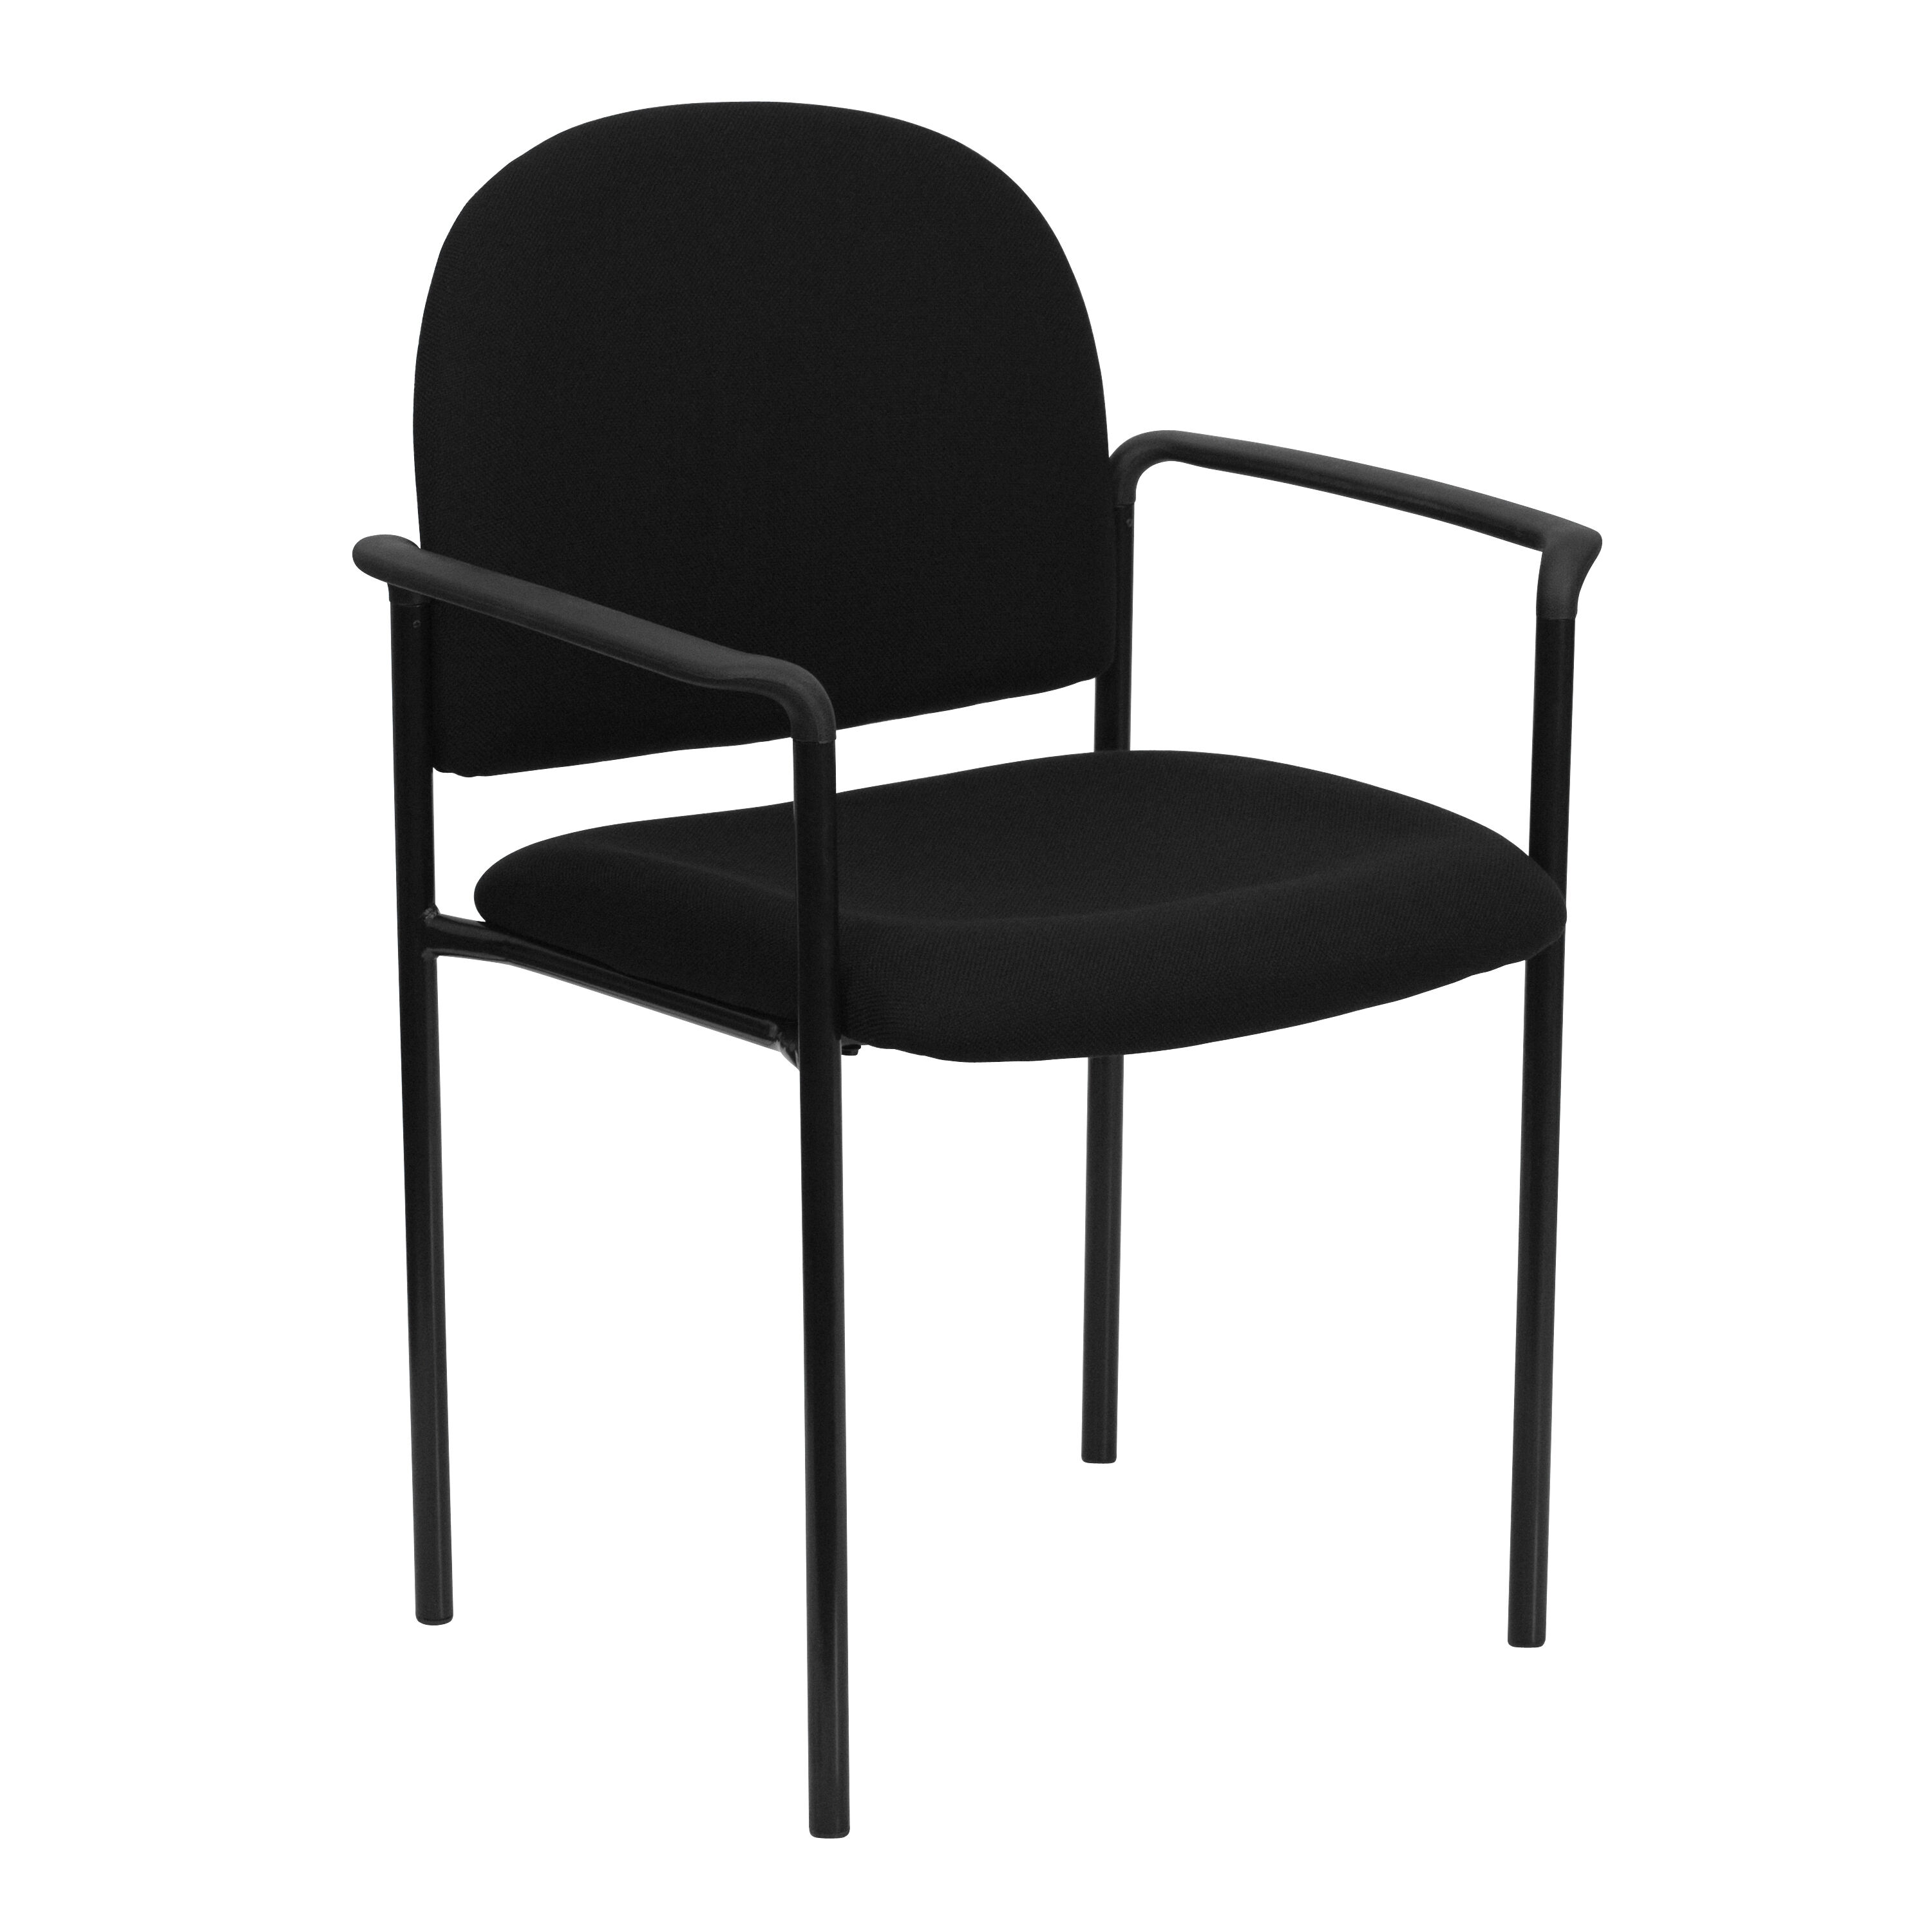 ... Our Comfort Black Fabric Stackable Steel Side Reception Chair With Arms  Is On Sale Now.